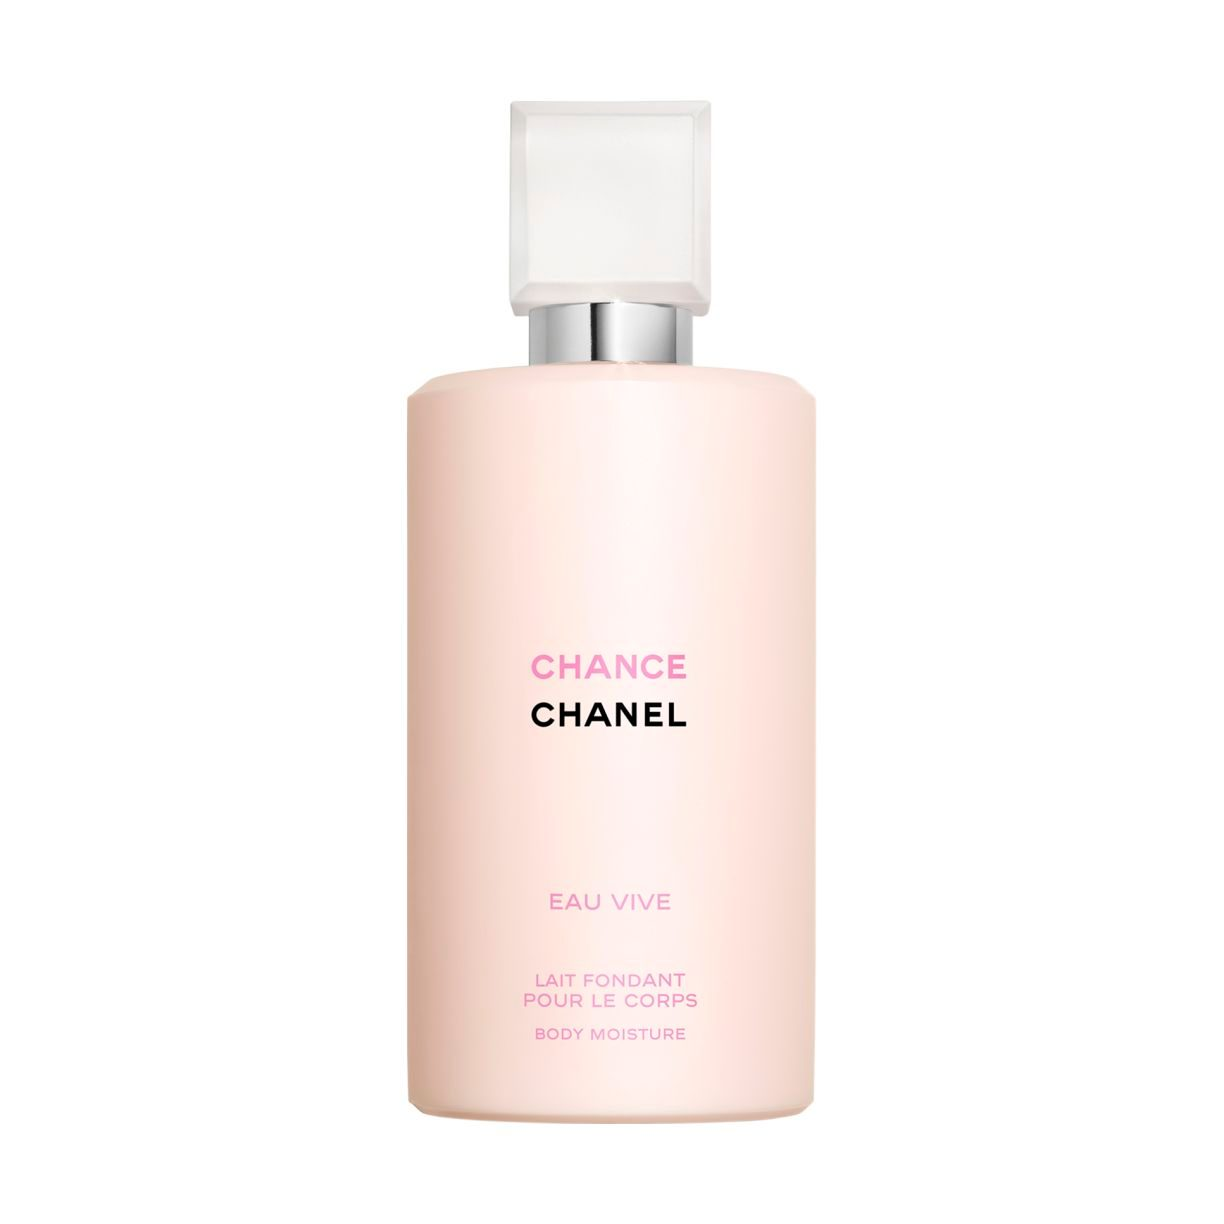 CHANCE EAU VIVE BODY MOISTURE